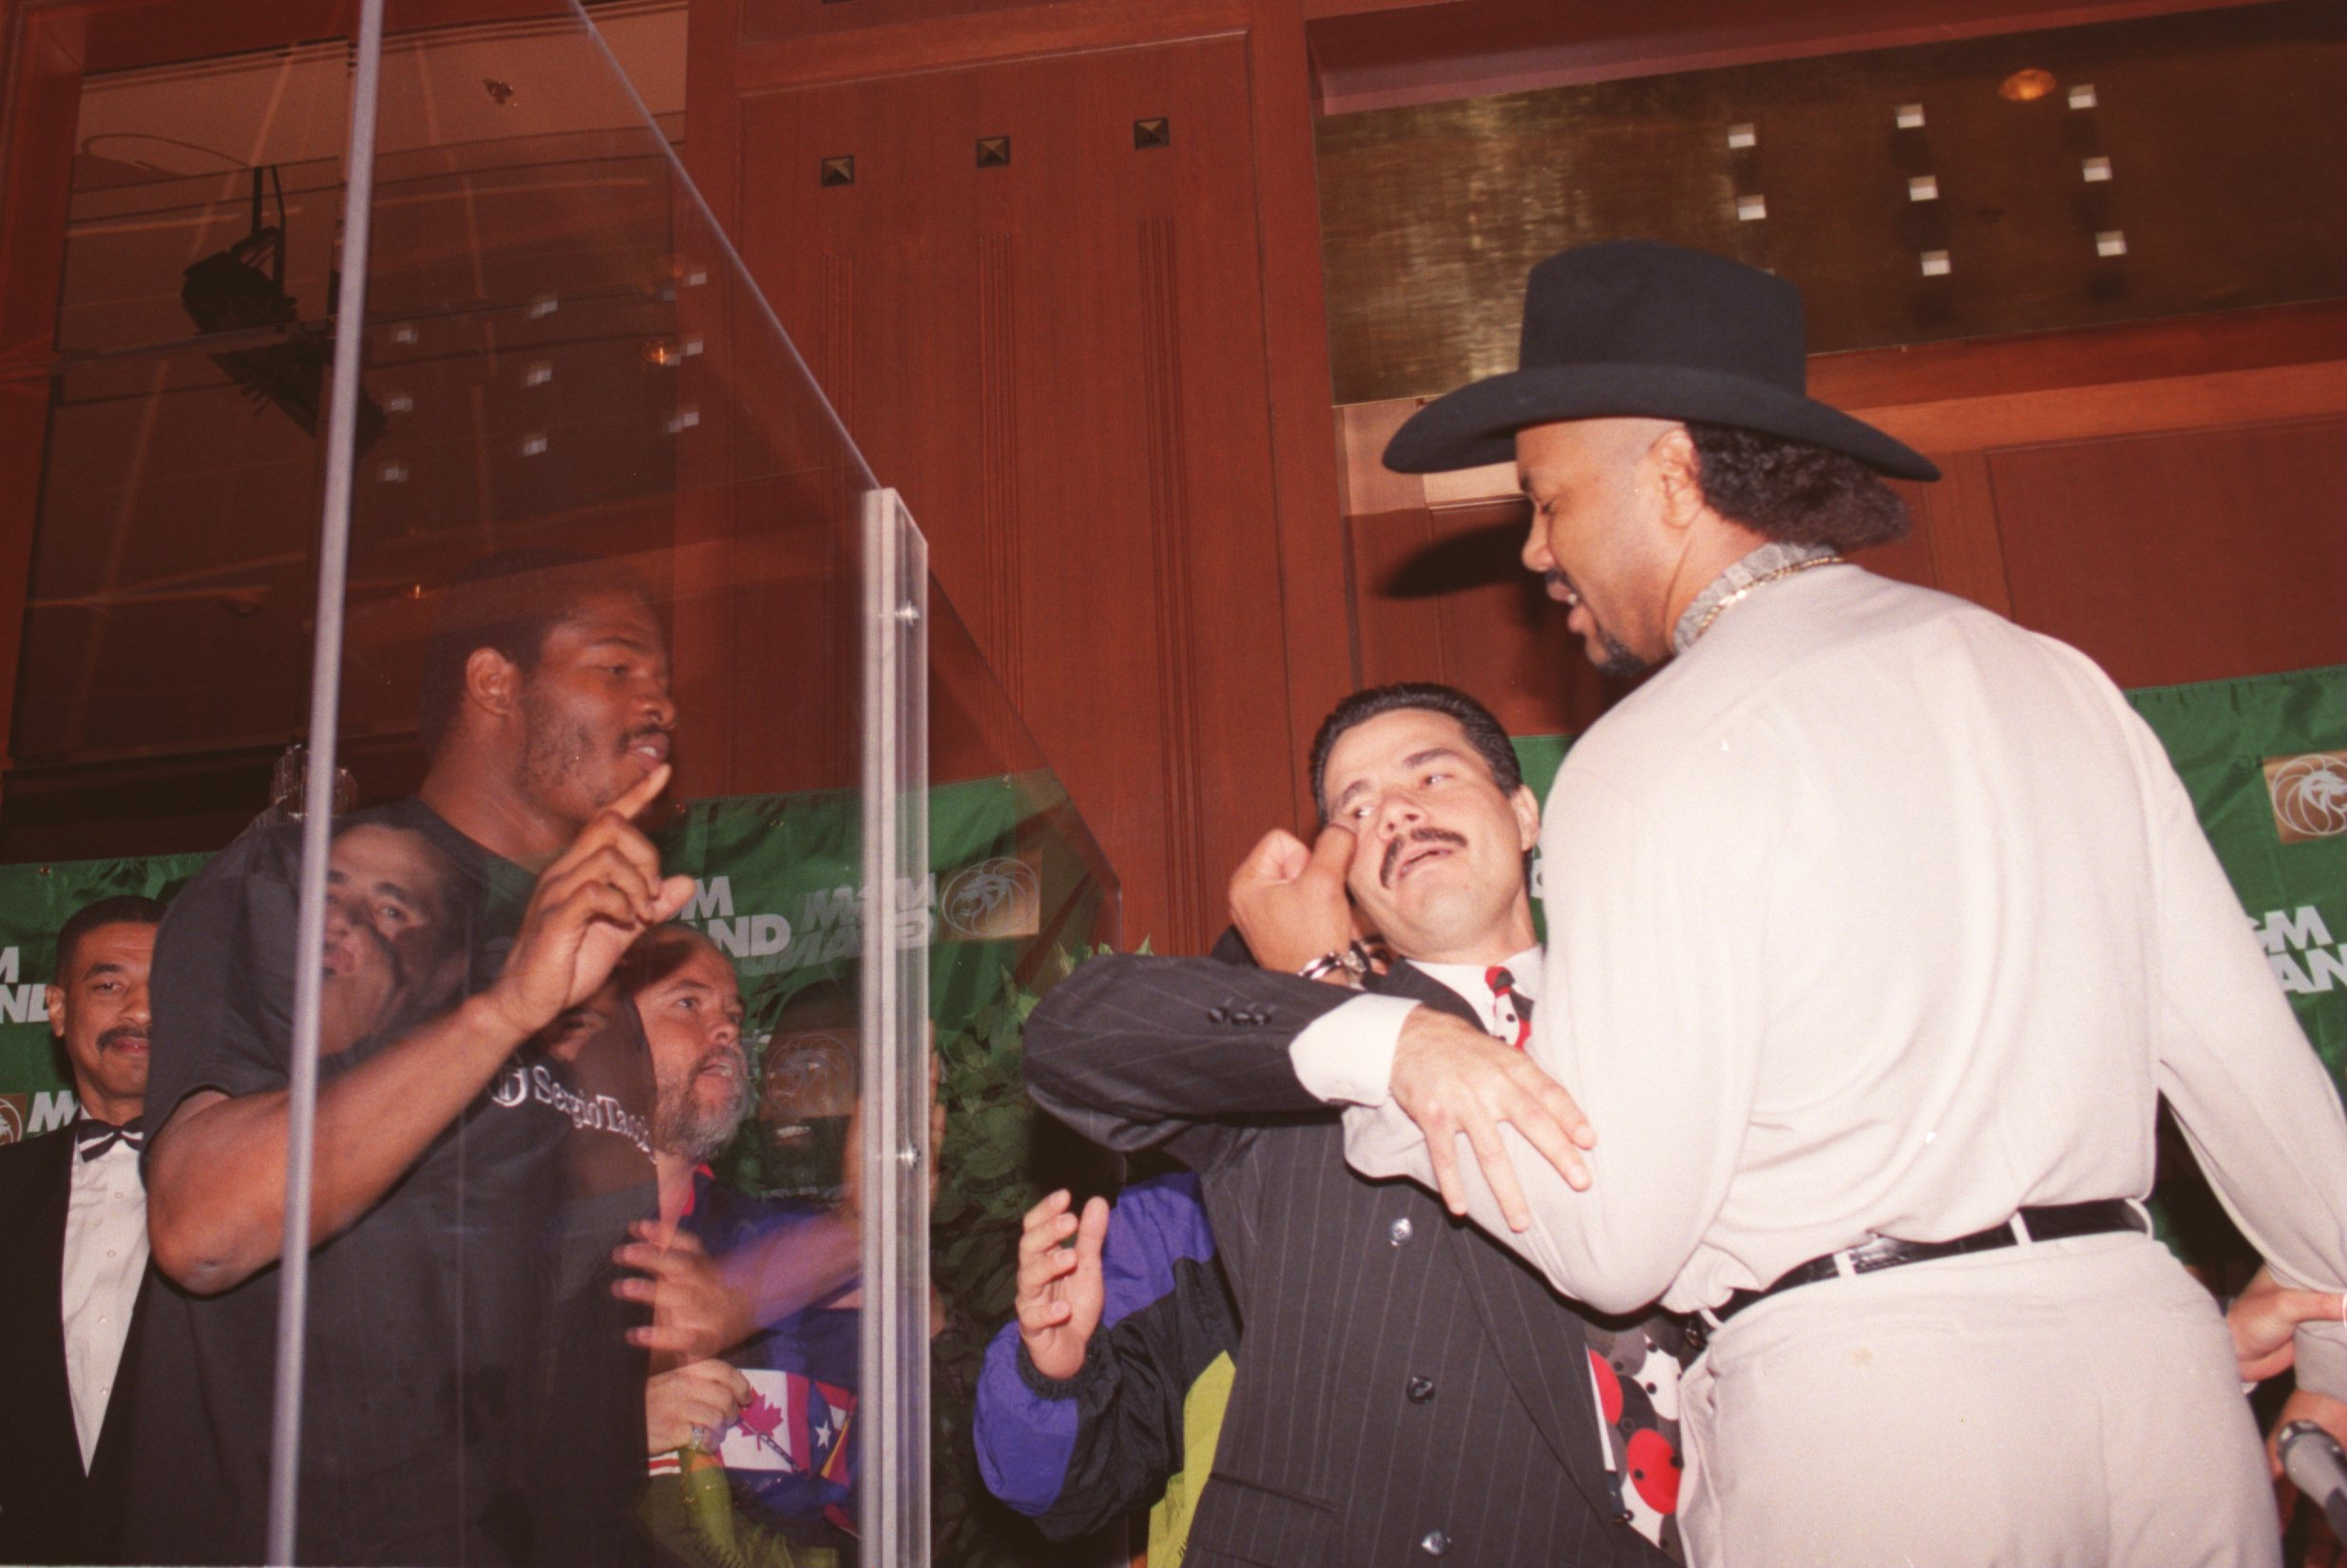 8 JUN 1995: JORGE LUIS GONZALEZ (RIGHT) IS RESTRAINED BY MANAGER LUIS DECUBAS WHILE RIDDICK BOWE (LEFT, POINTING) AND HIS MANAGER ROCK NEWMAN LOOK THROUGH THE GLASS PARTITION THAT SEPARATED THE TWO FIGHTERS DURING A PRESS CONFERENCE IN LOS ANGELES PROMOTIN THEIR UPCOMING JUNE 17 FIGHT AT THE MGM GRAND IN LAS VEGAS.